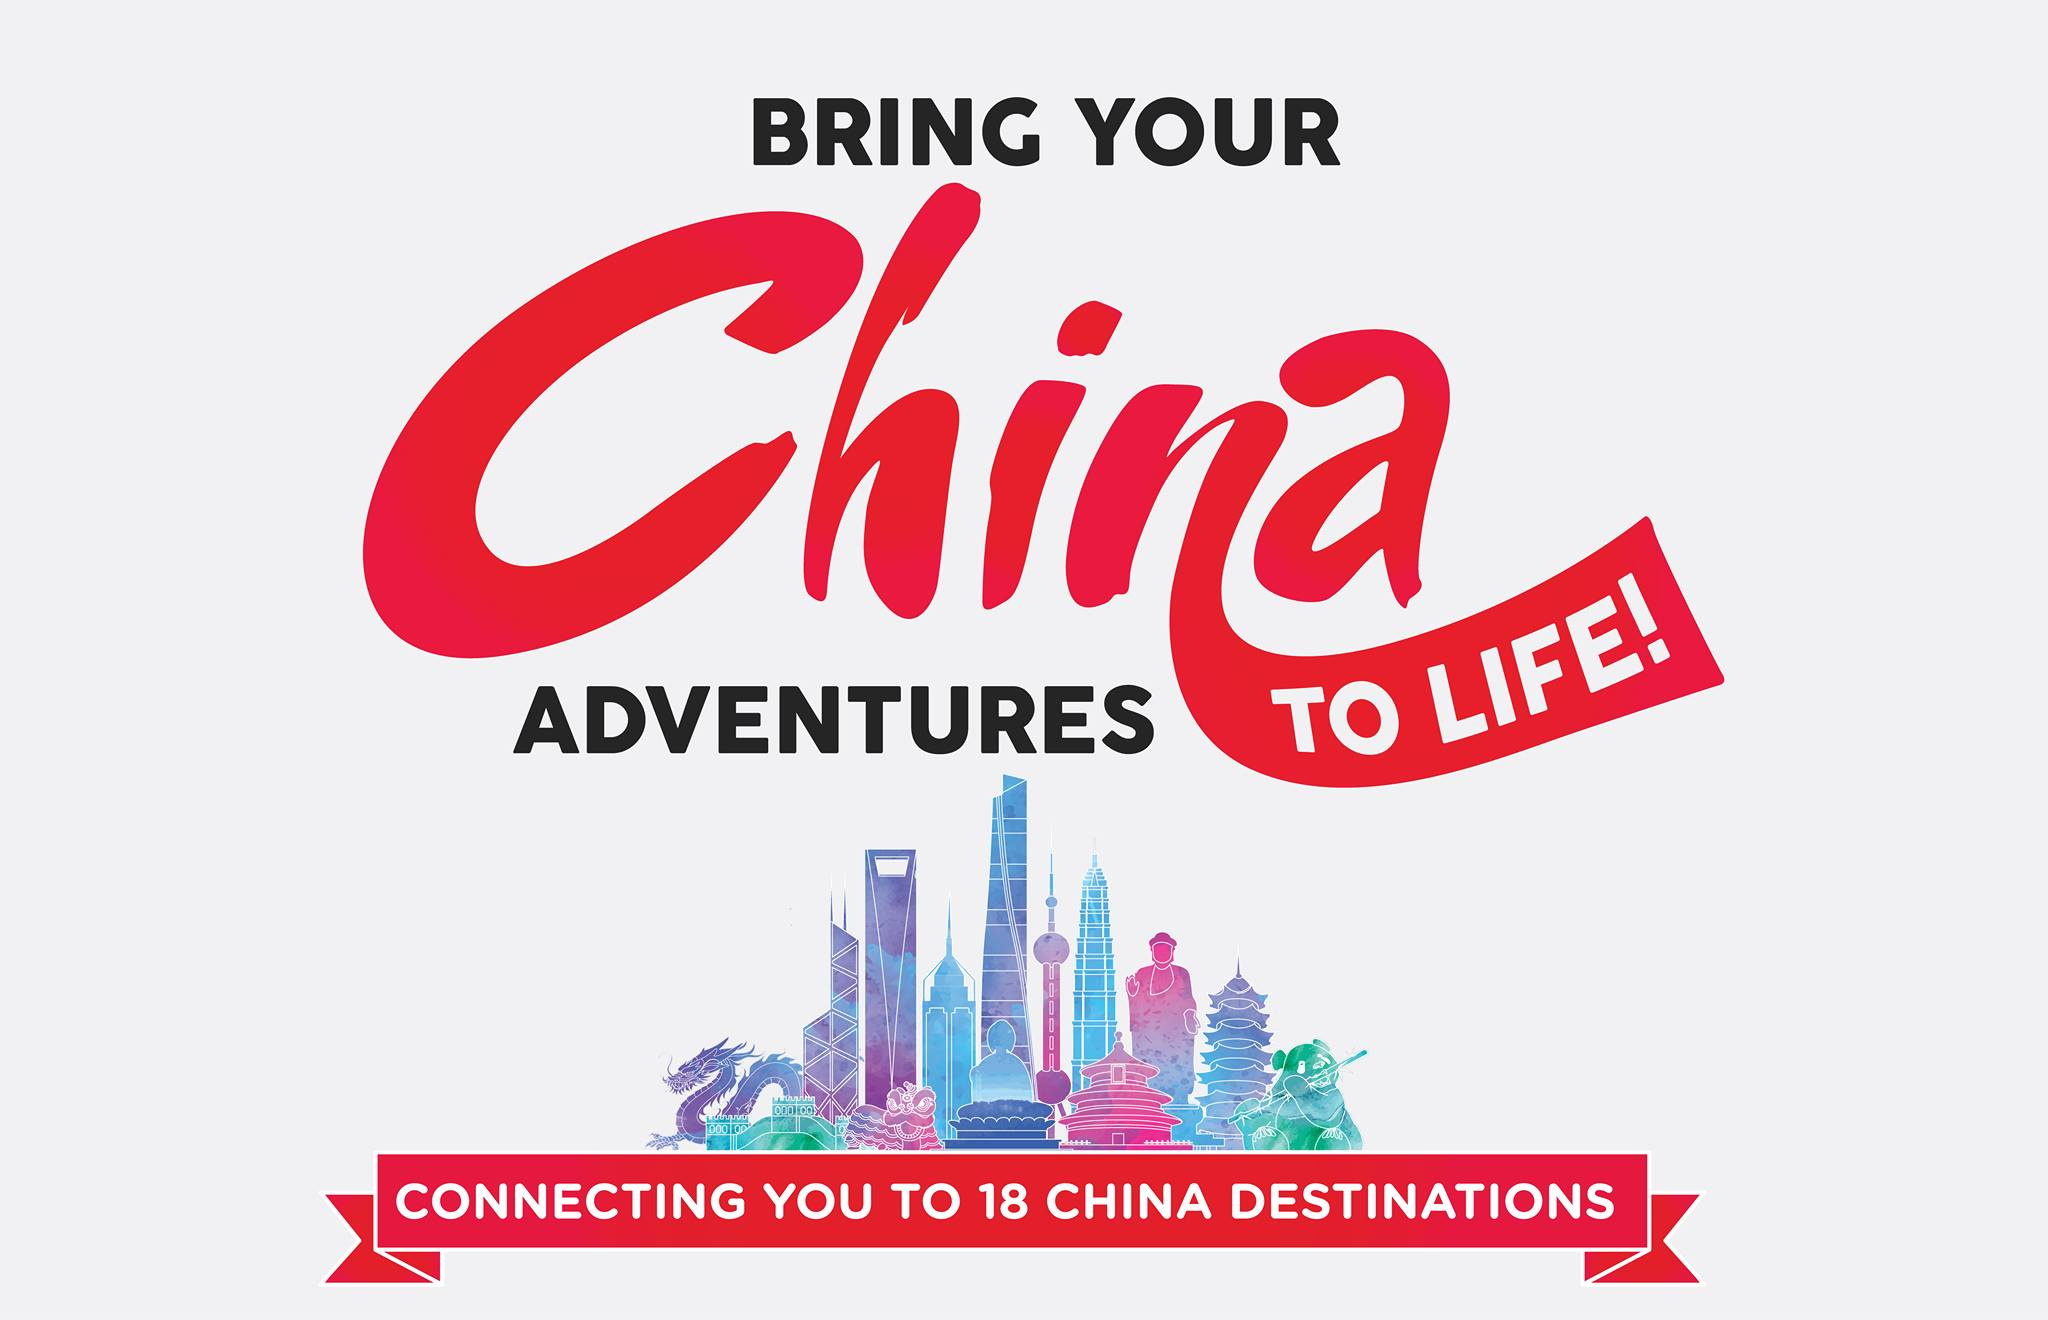 Bring your China adventures to life